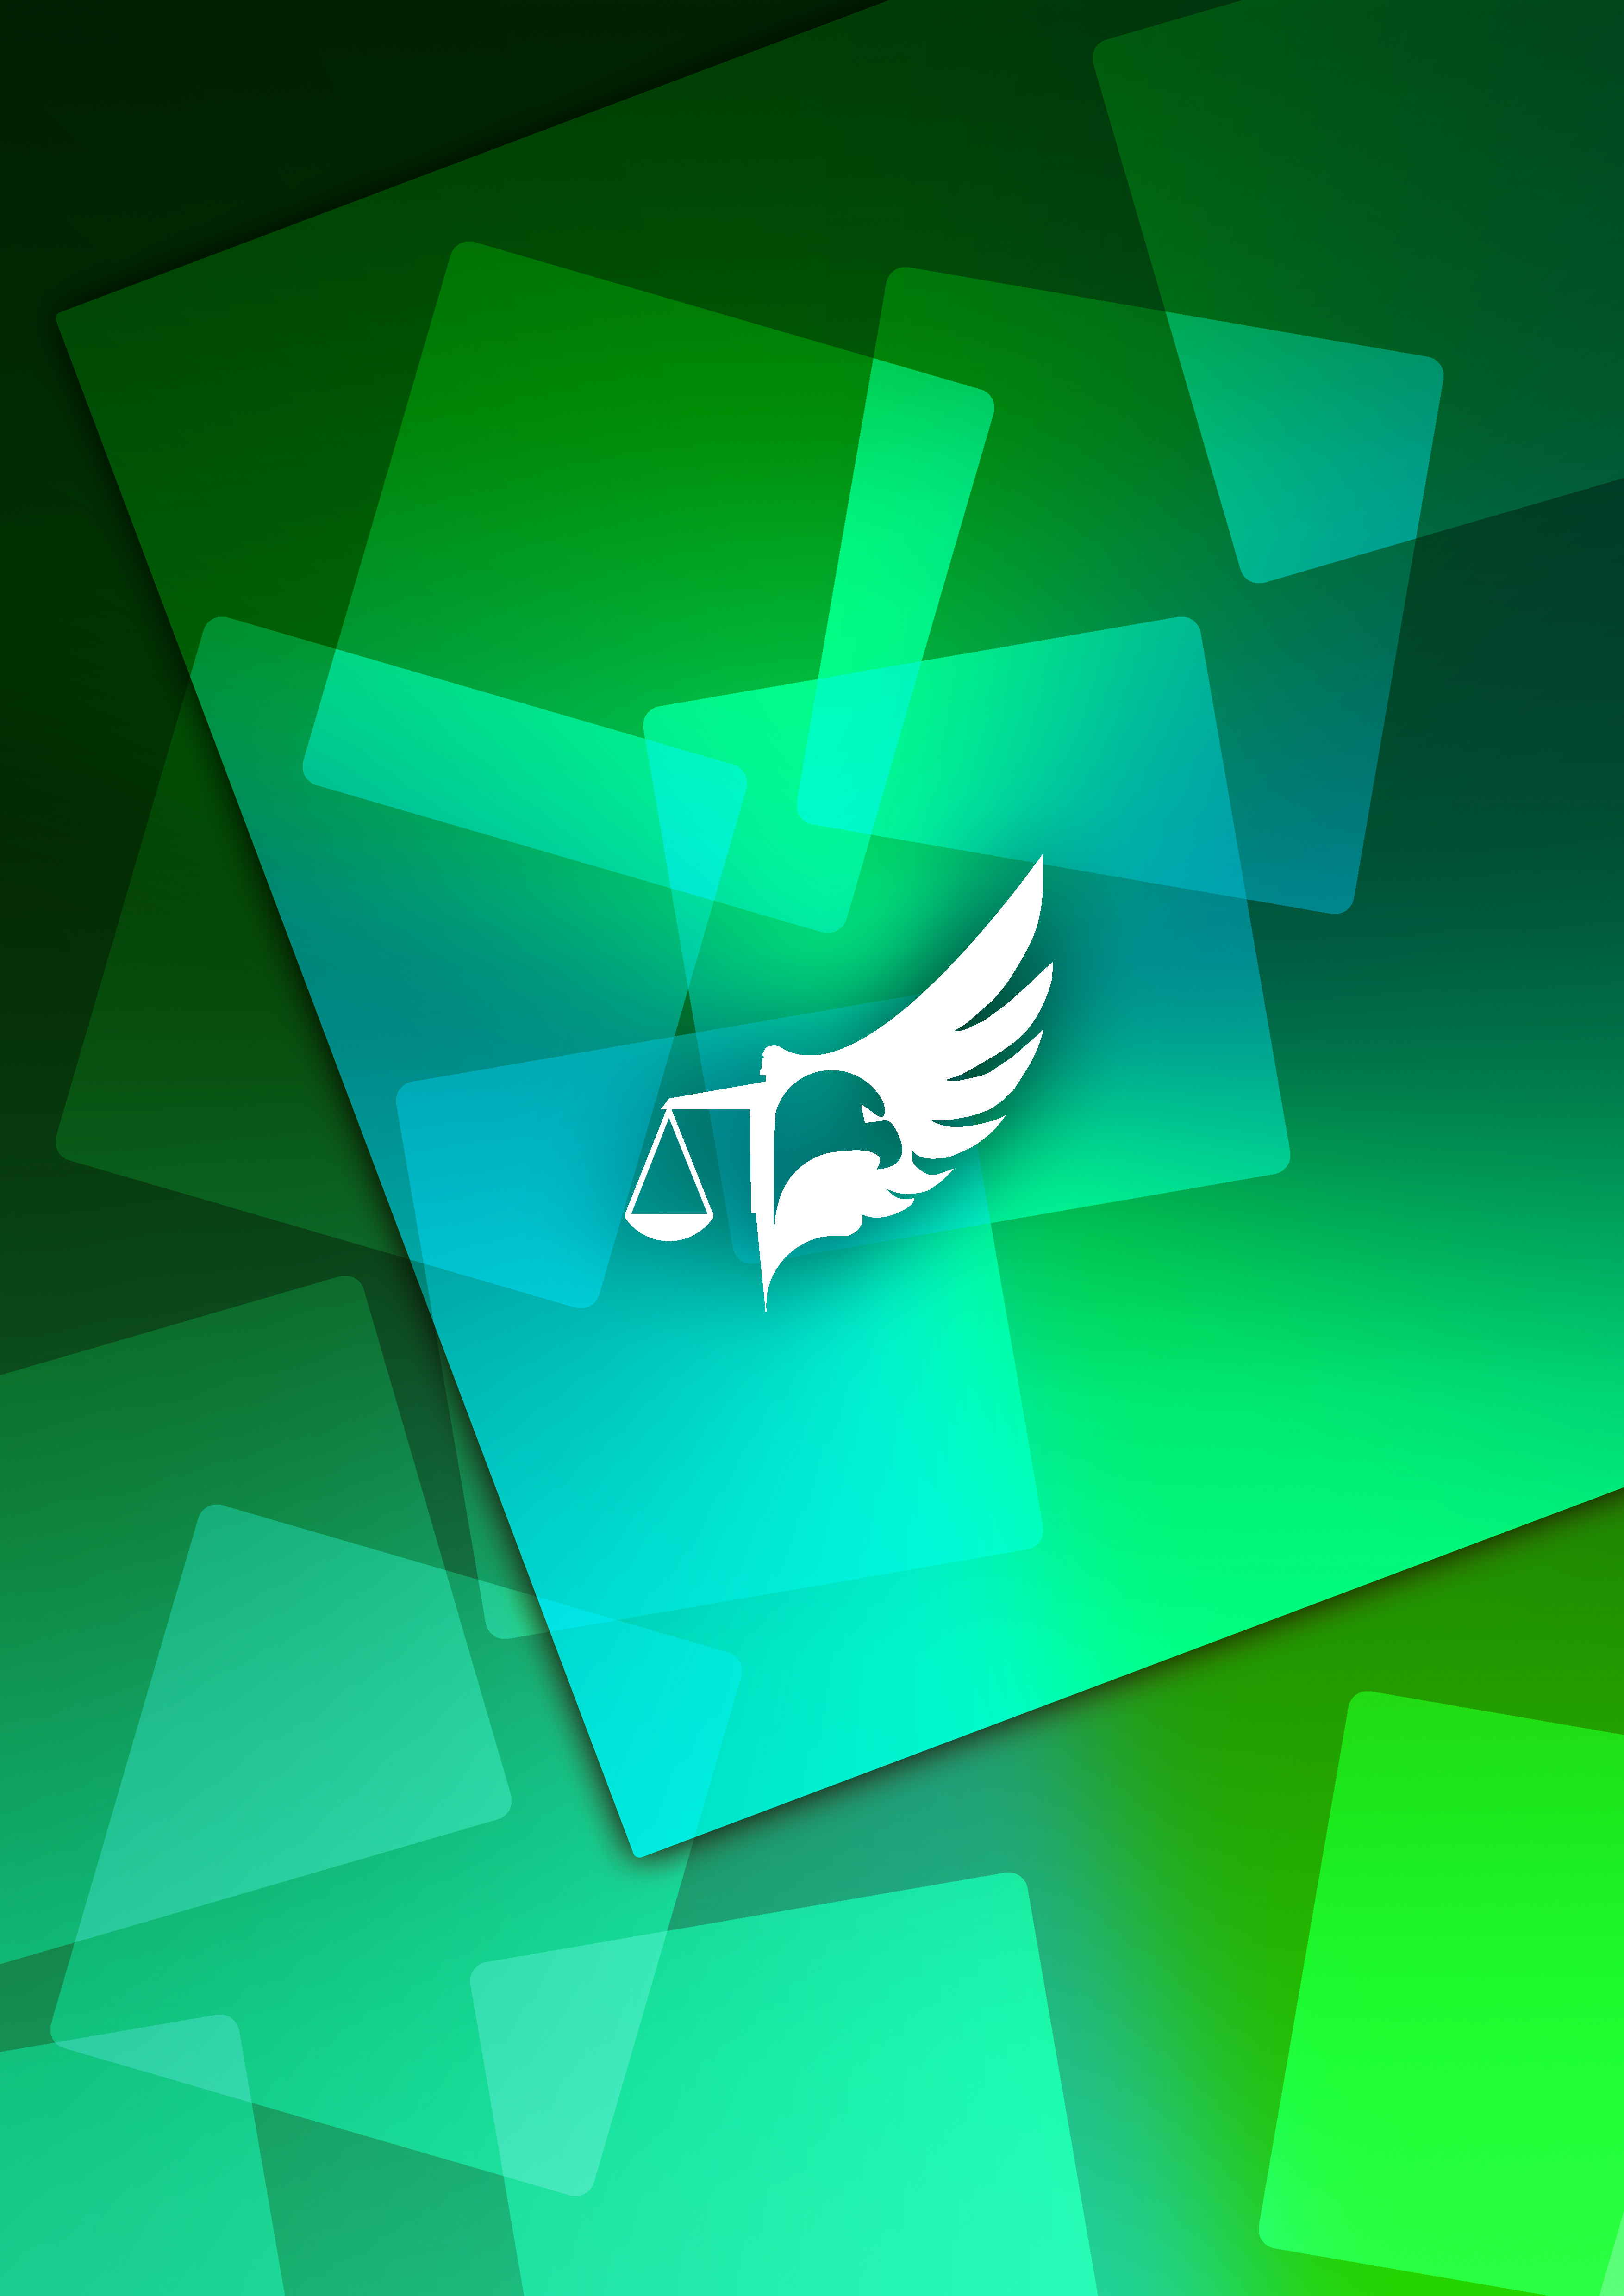 WALLPAPERS FALCONE TABLET GREEN